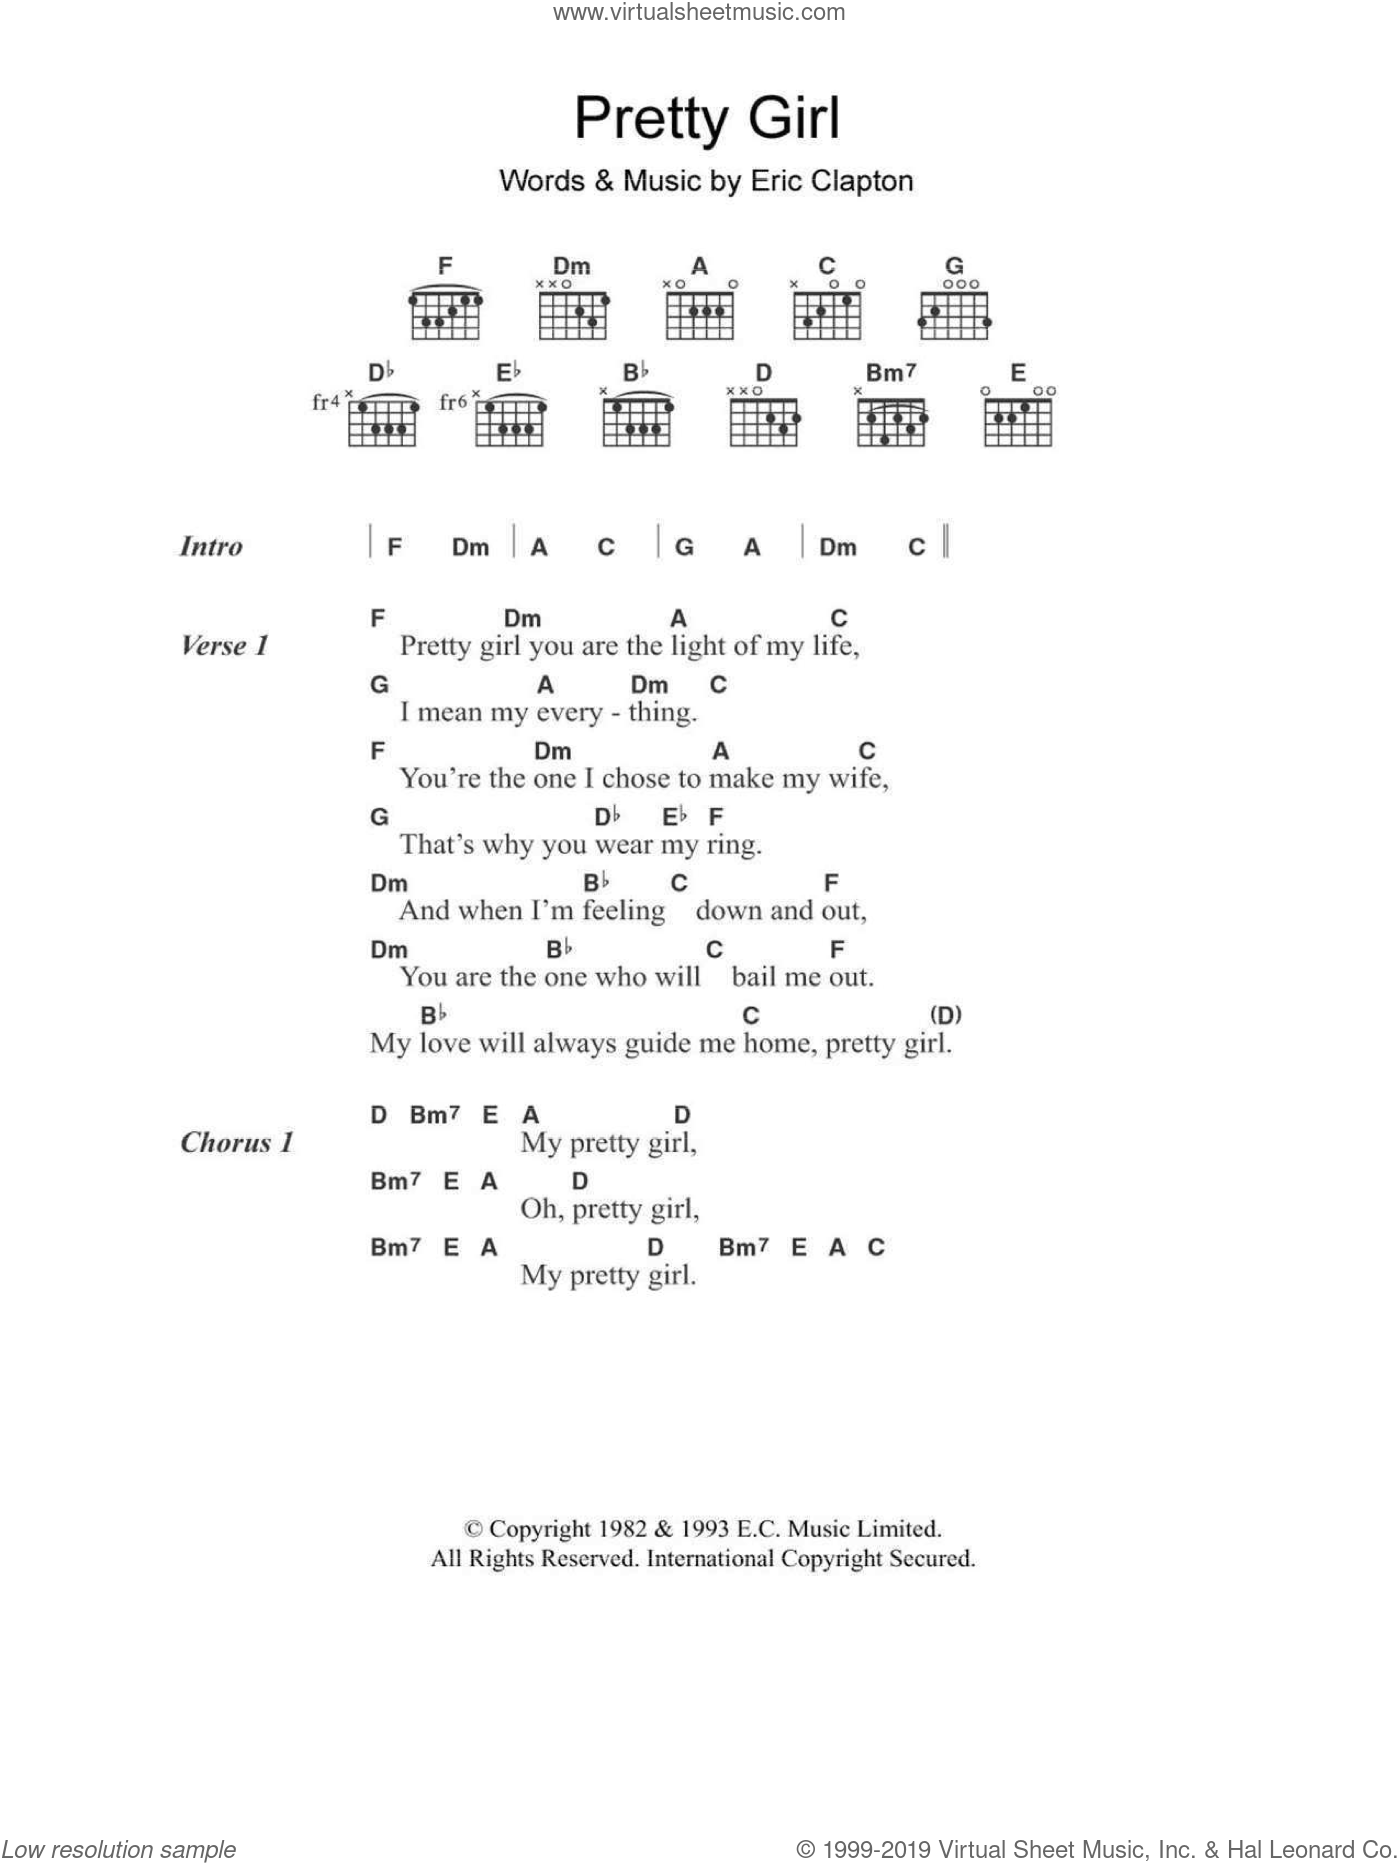 Pretty Girl sheet music for guitar (chords) by Eric Clapton, intermediate skill level